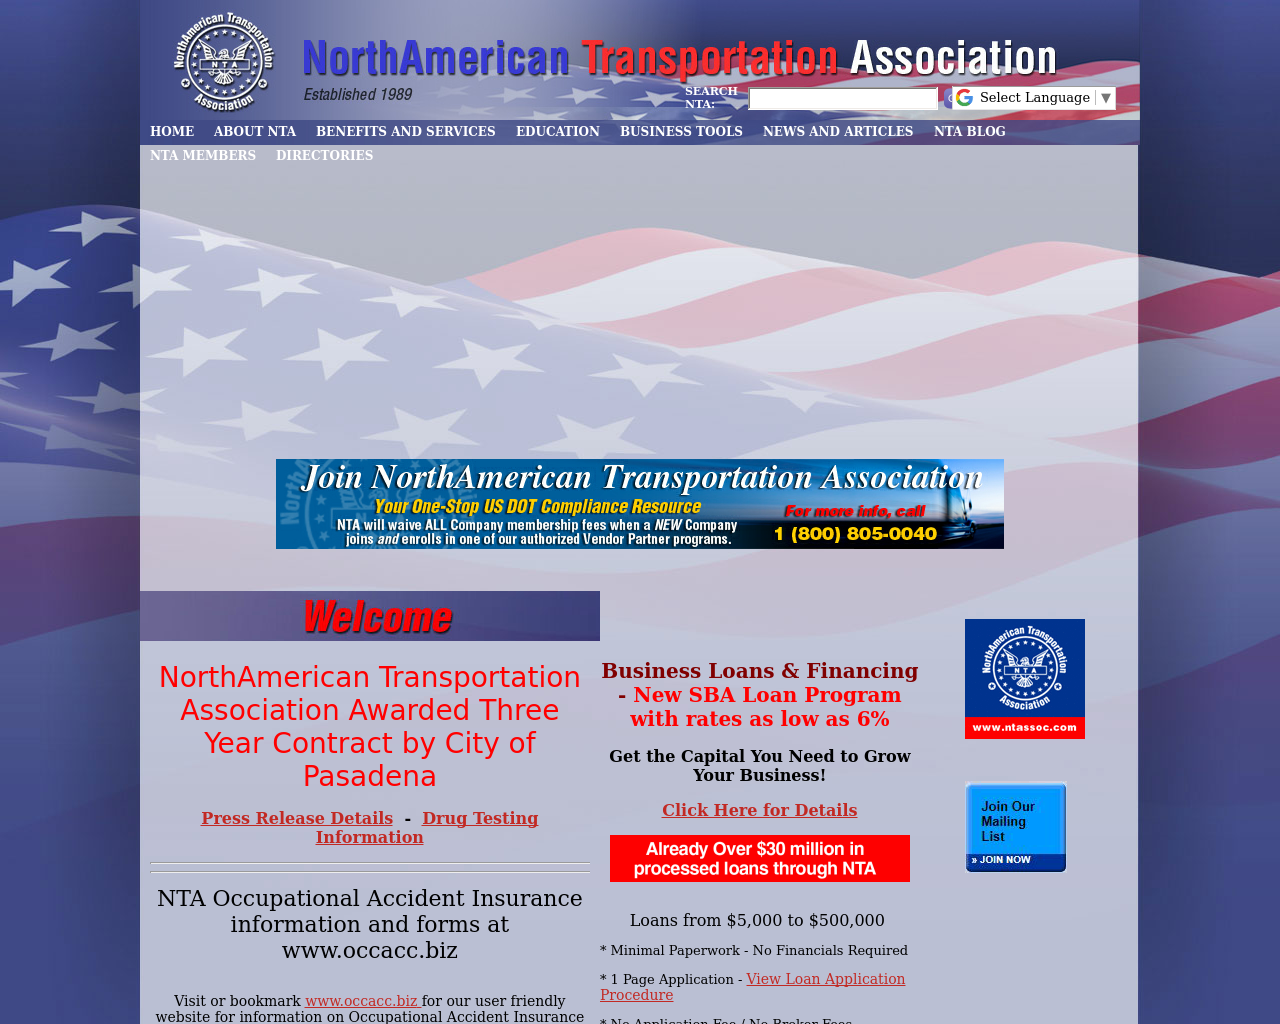 NorthAmerican-Transportation-Association-Advertising-Reviews-Pricing